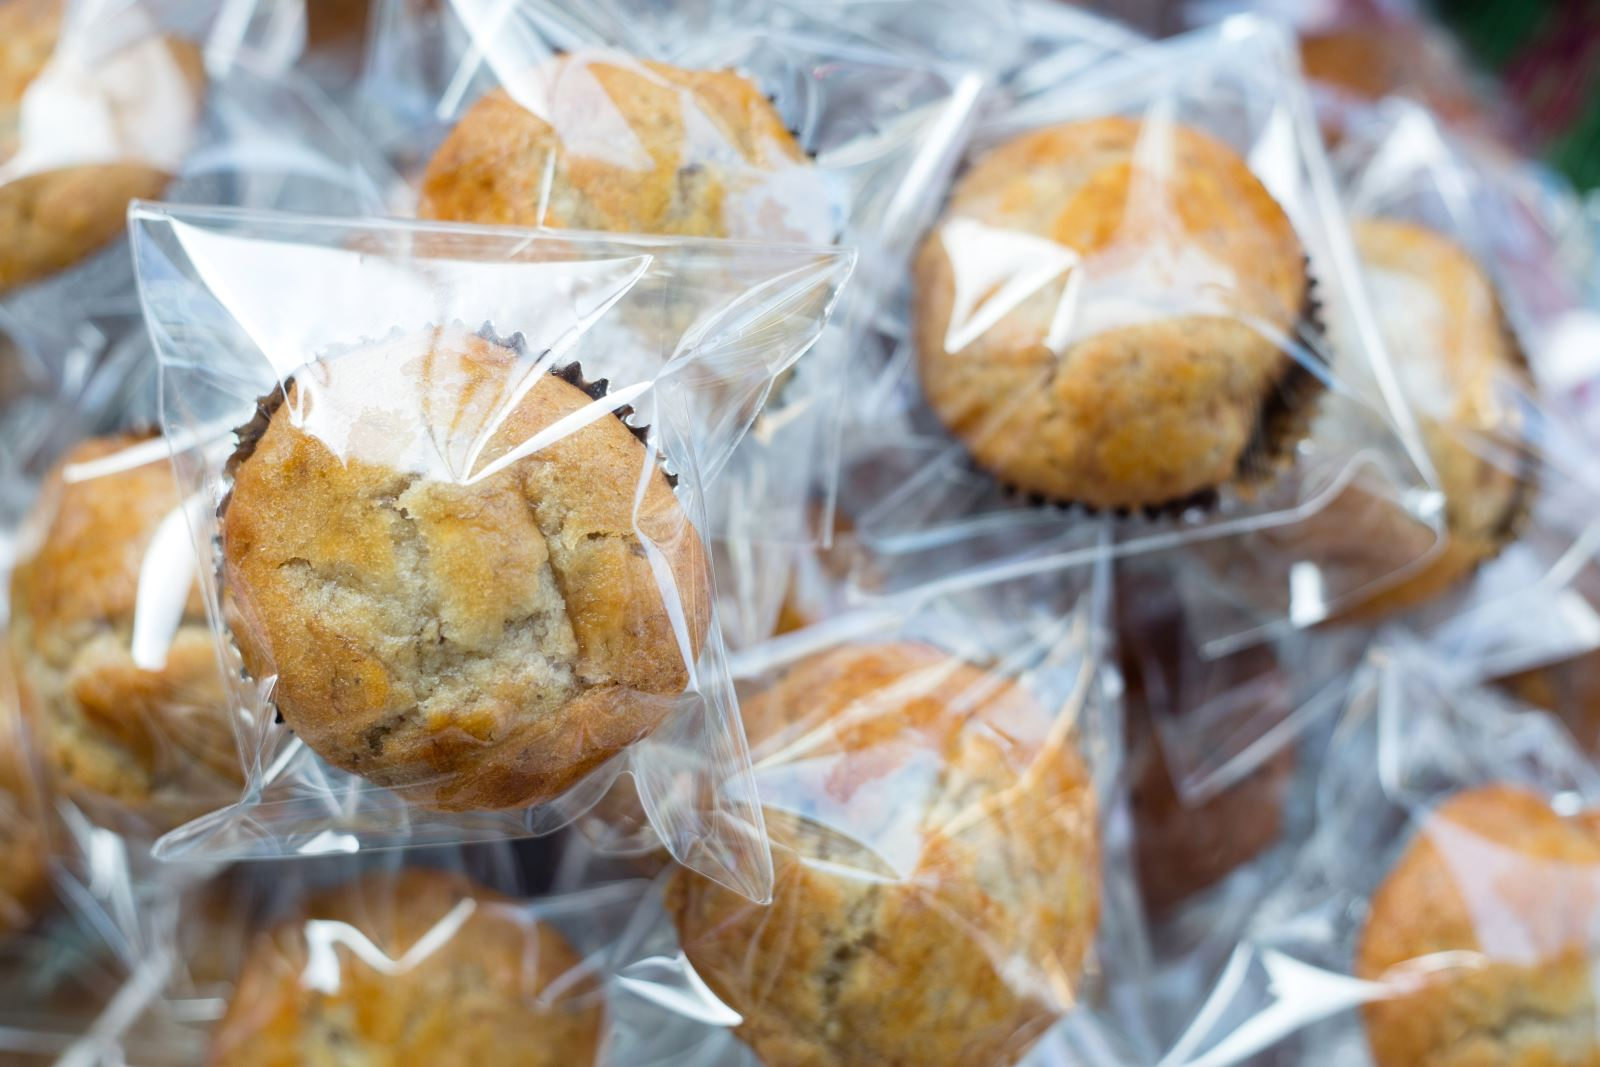 bagged cupcakes ready for freezer